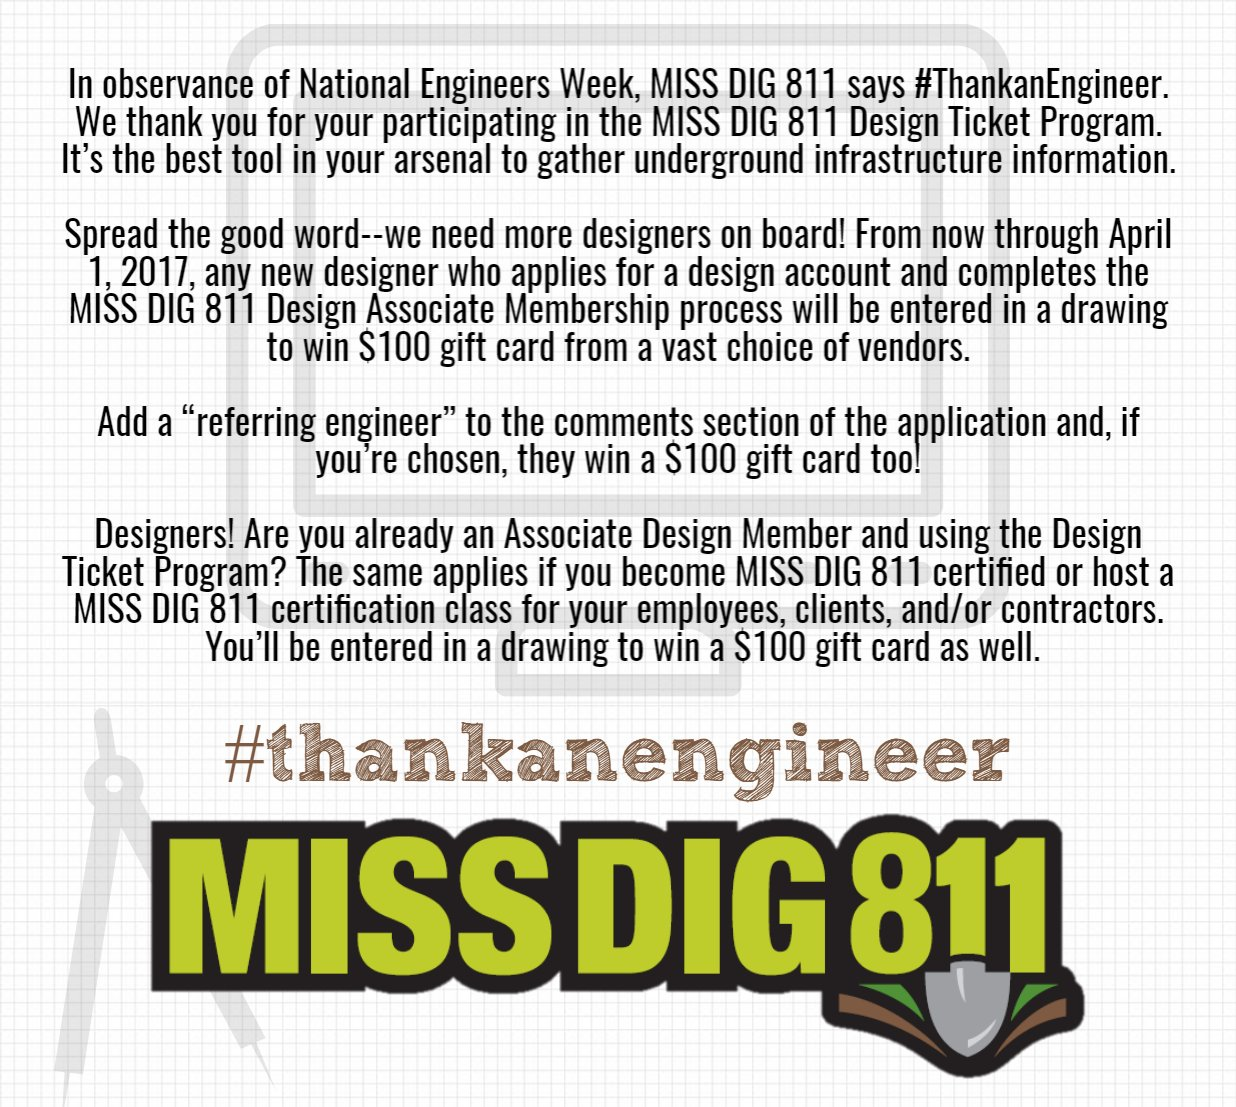 Miss Dig 811 On Twitter Https T Co D0ymvdayta Thankanengineer Eweek2017 · 7th consecutive year of certification in the michigan turfgrass environmental. twitter